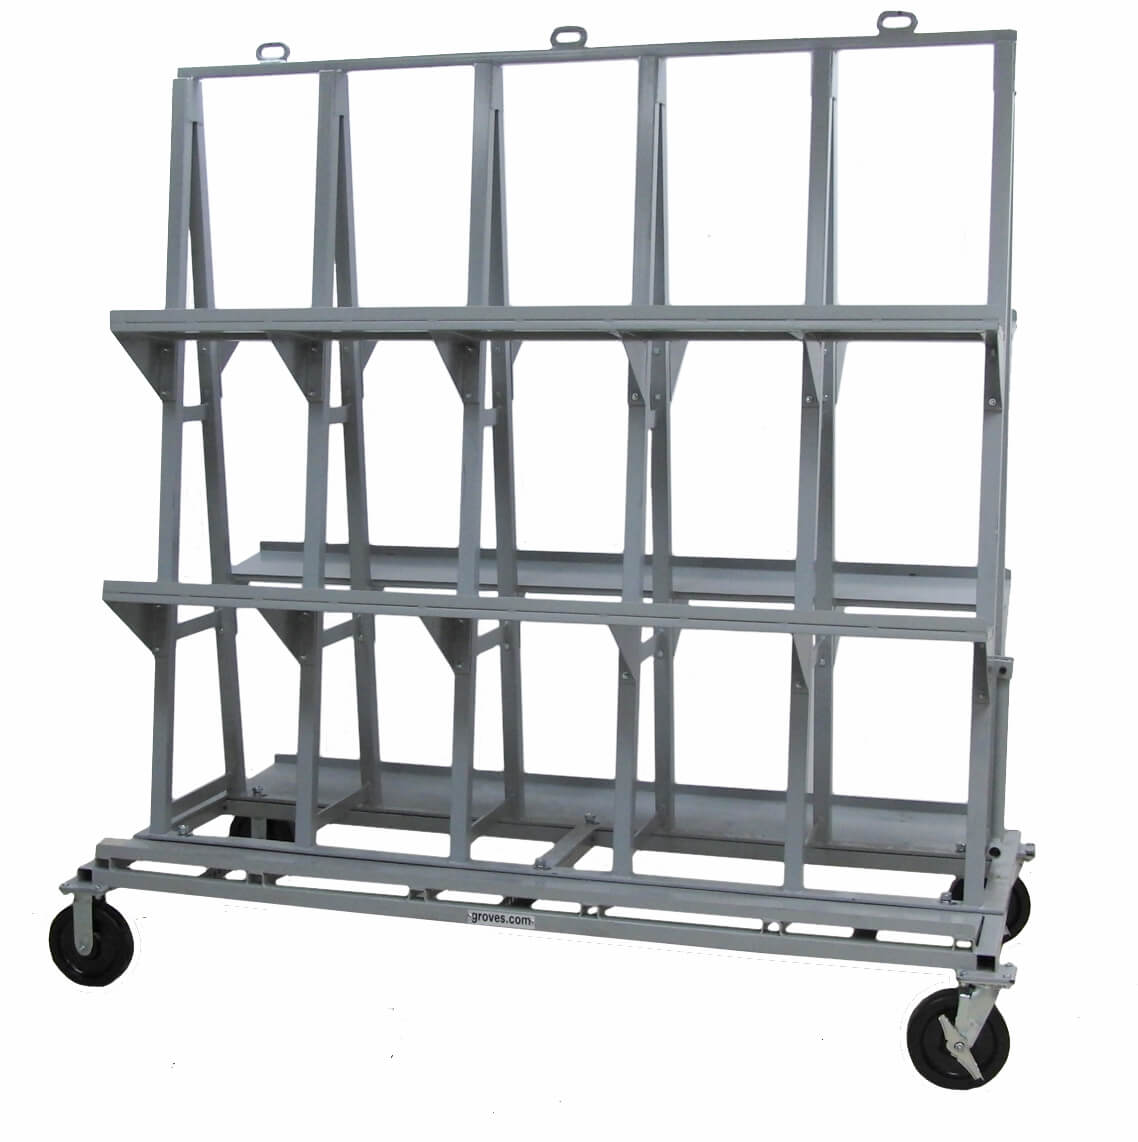 Heavy Duty Backsplash Cart U2013 HDBSC8472